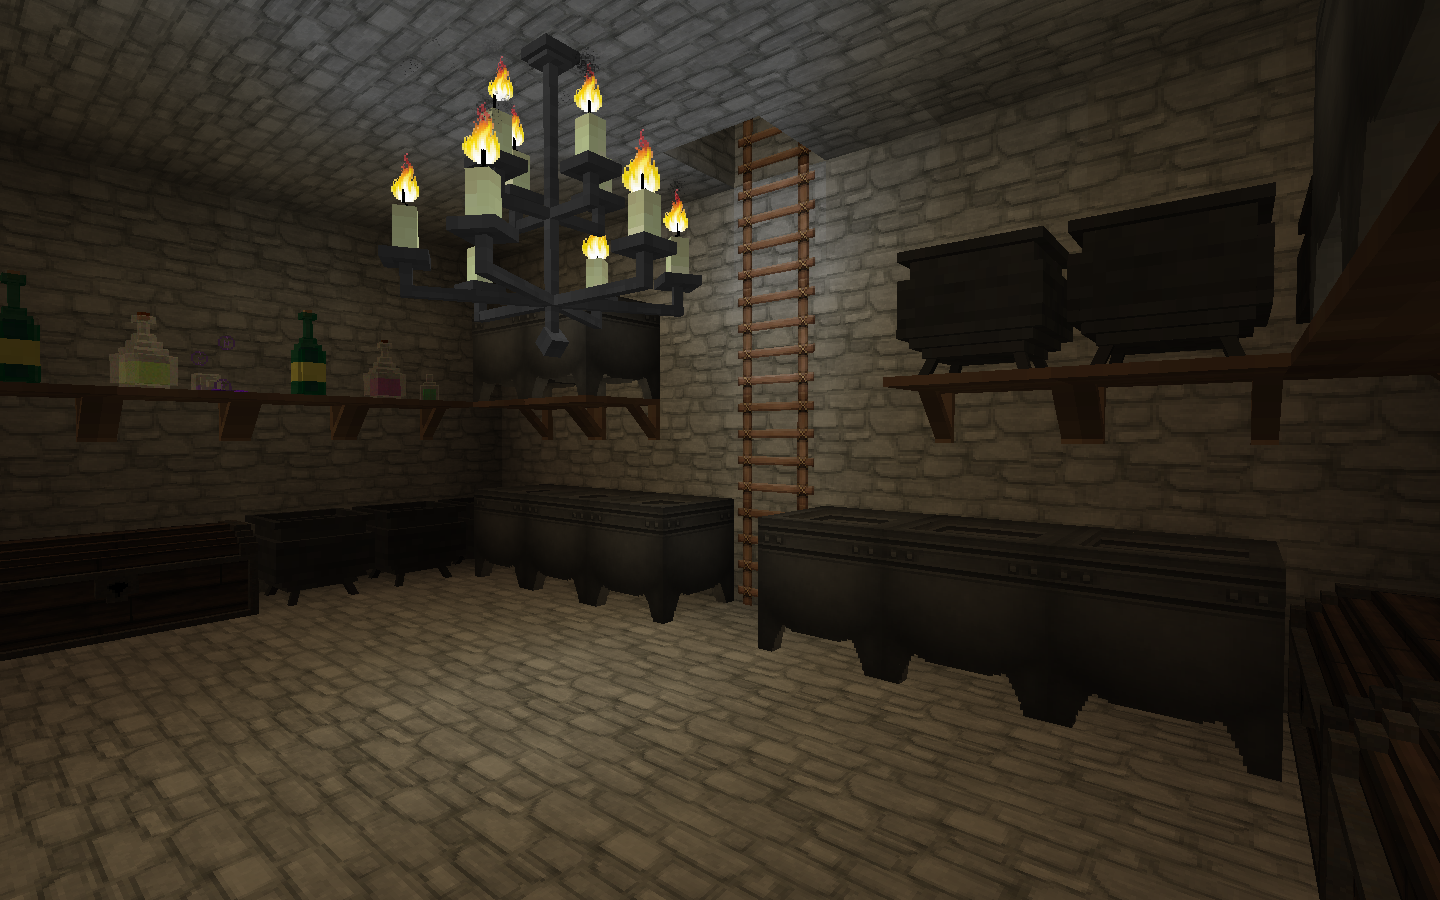 Hogwarts Bedroom Minecrafts Wizarding World Potions Classroom Snapes